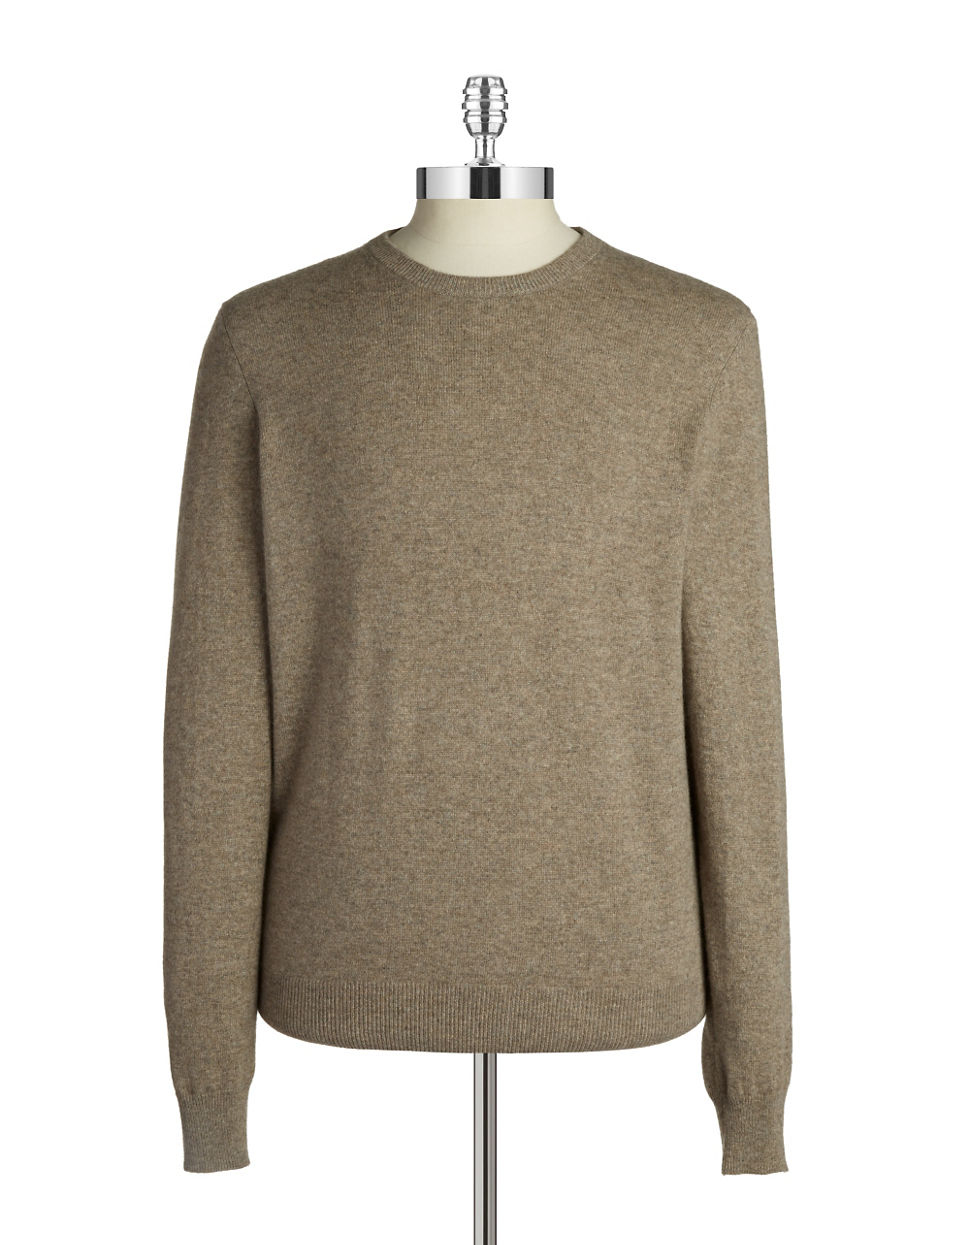 Find great deals on eBay for dark brown cashmere sweater. Shop with confidence.